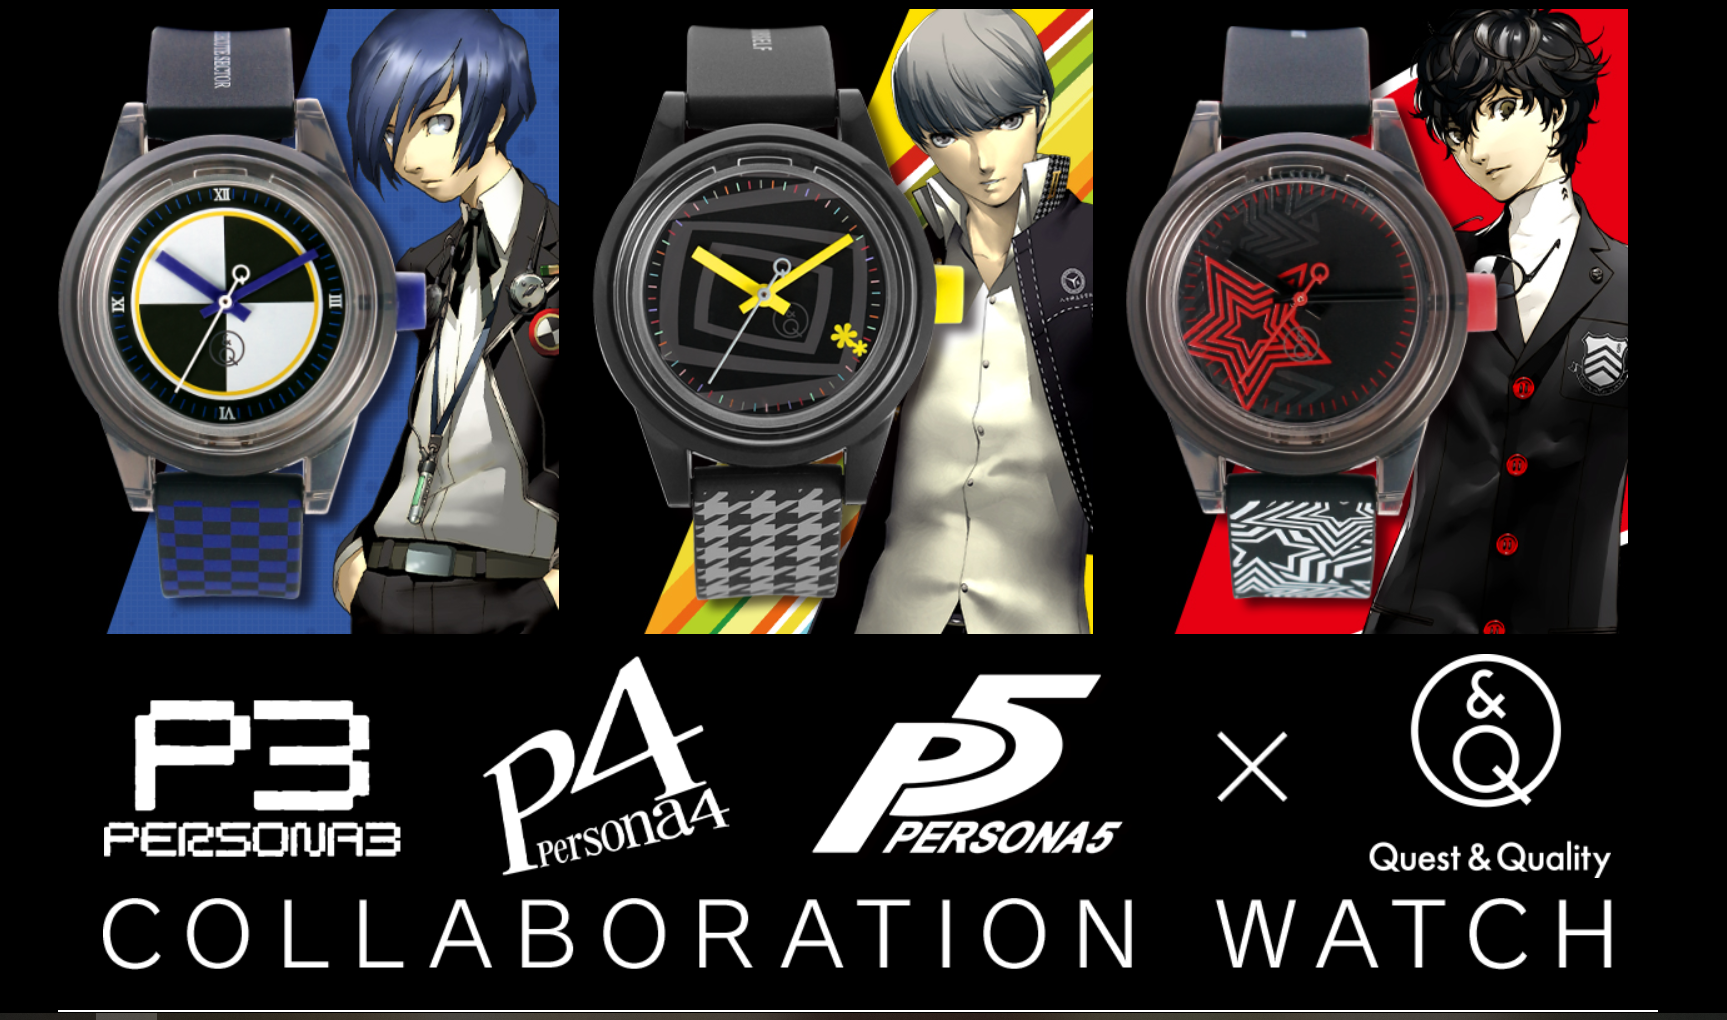 Persona watch designs